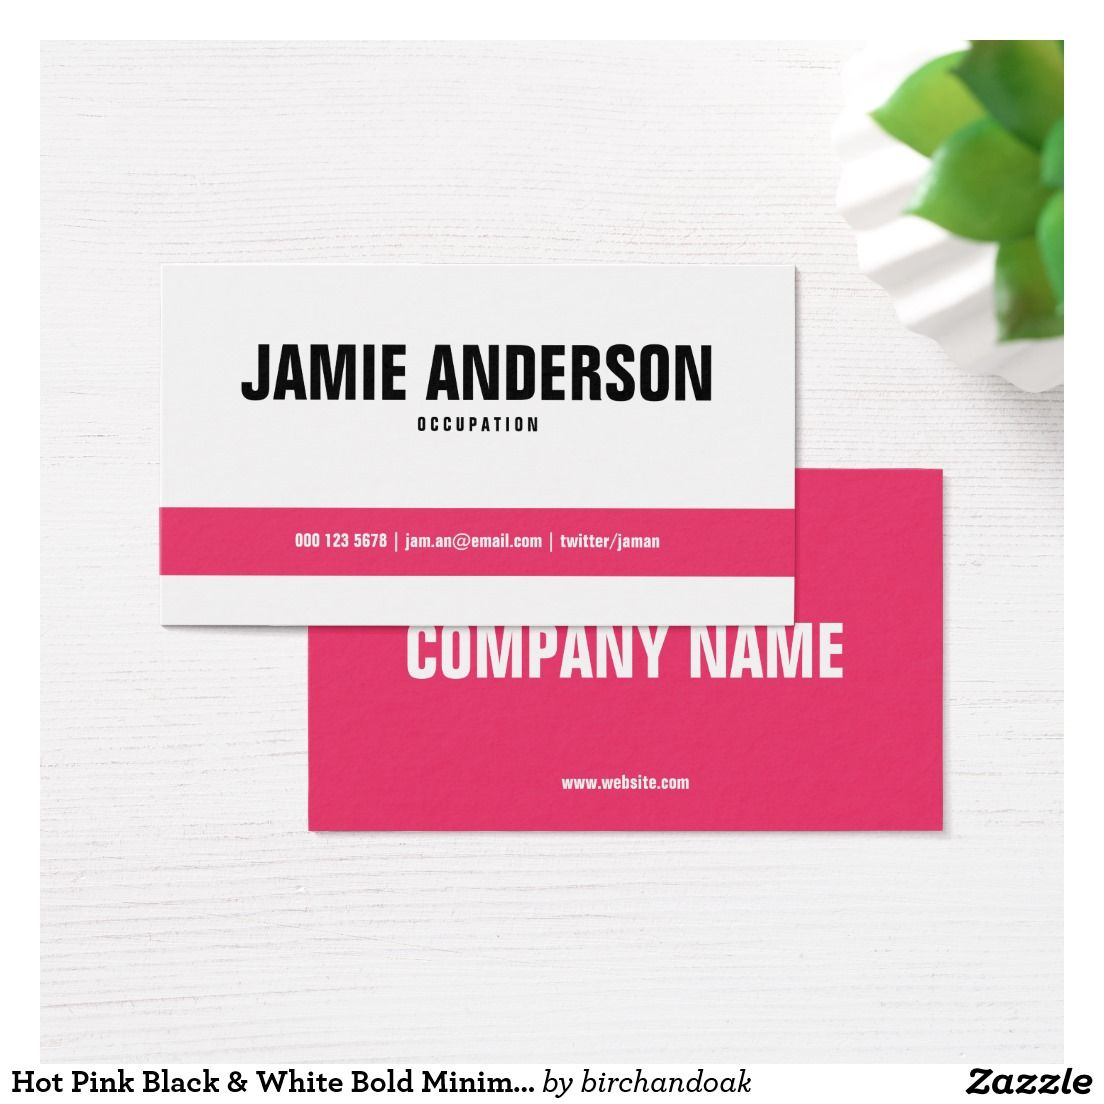 Hot Pink Black & White Bold Minimal Business Card | Pinterest ...